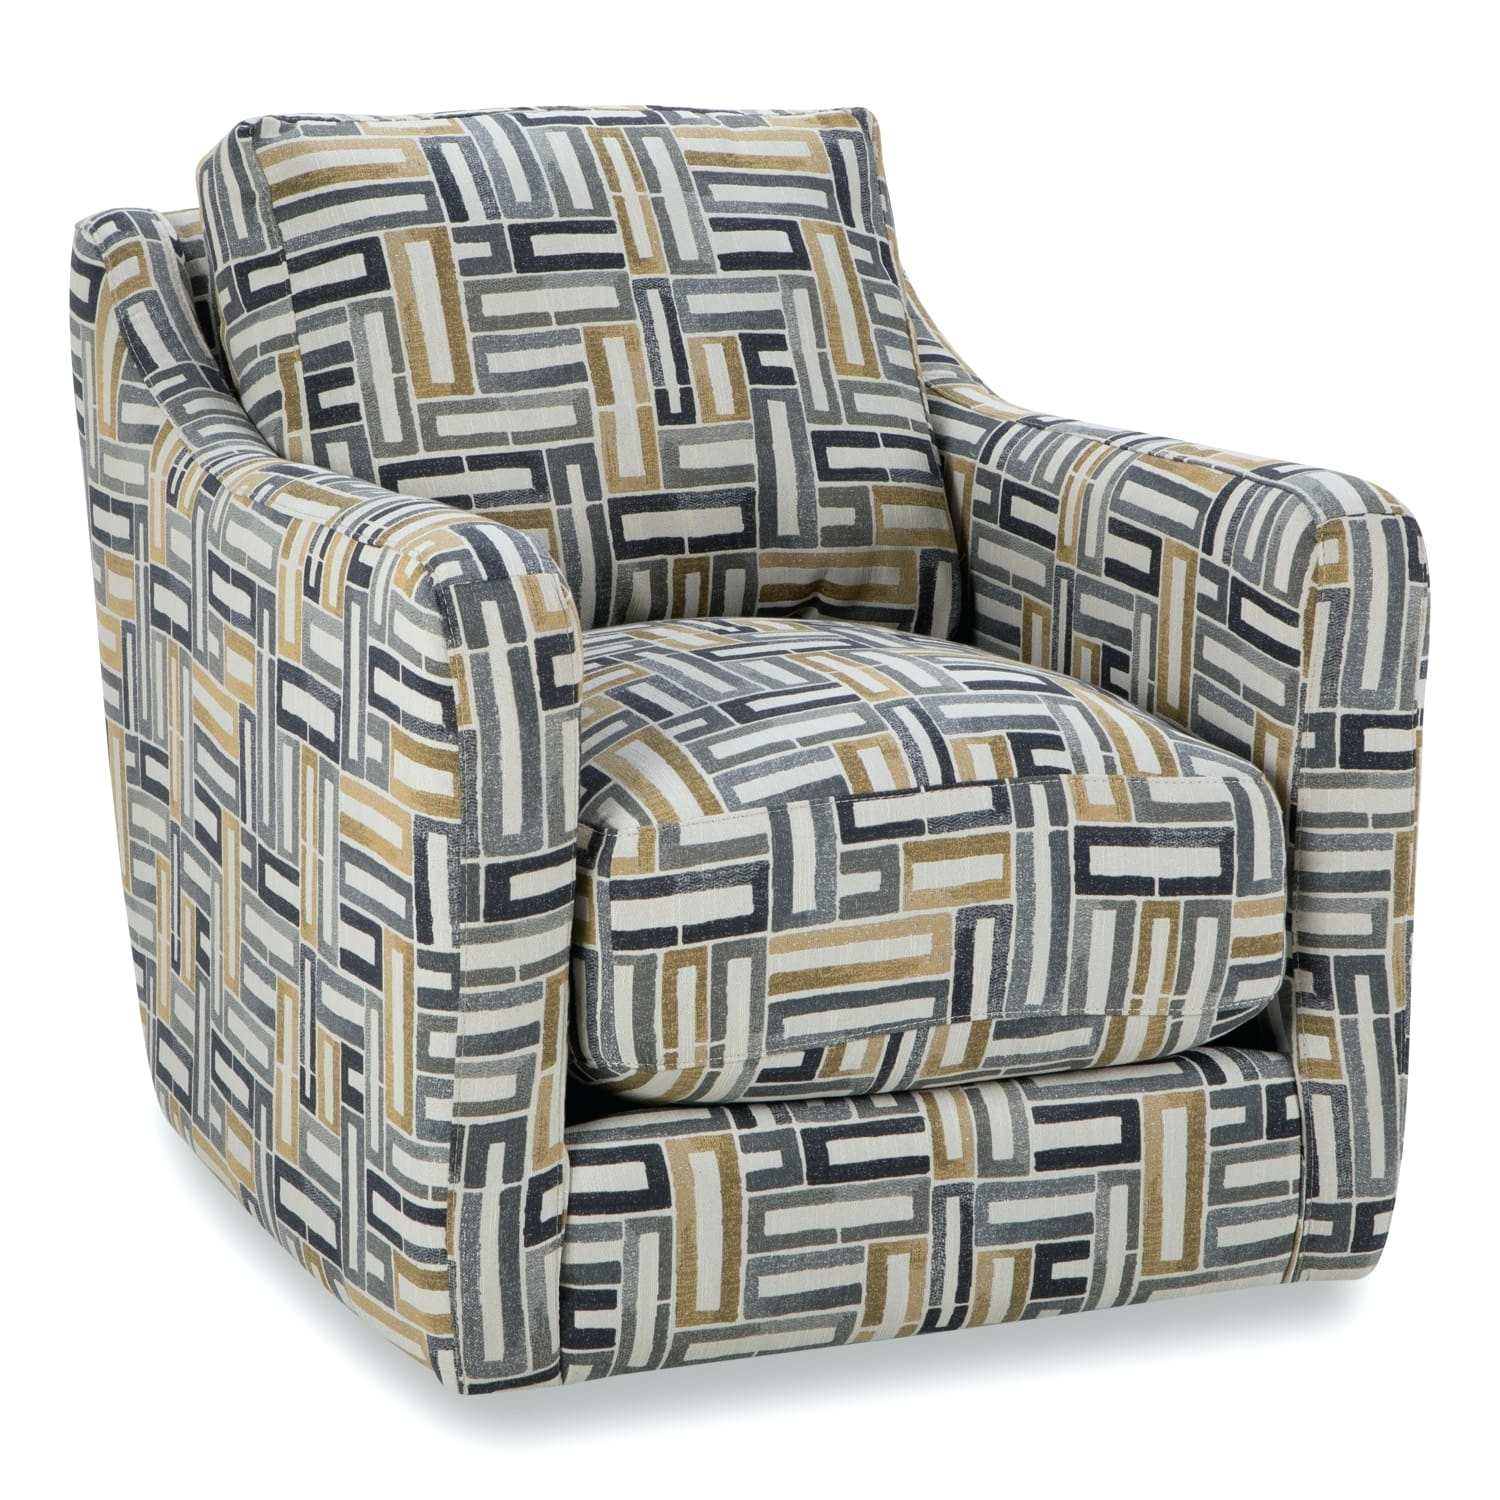 Circuit Swivel Accent Chair Living Spaces Swivel Accent Chair Swivel Inside Circuit Swivel Accent Chairs (Image 5 of 20)